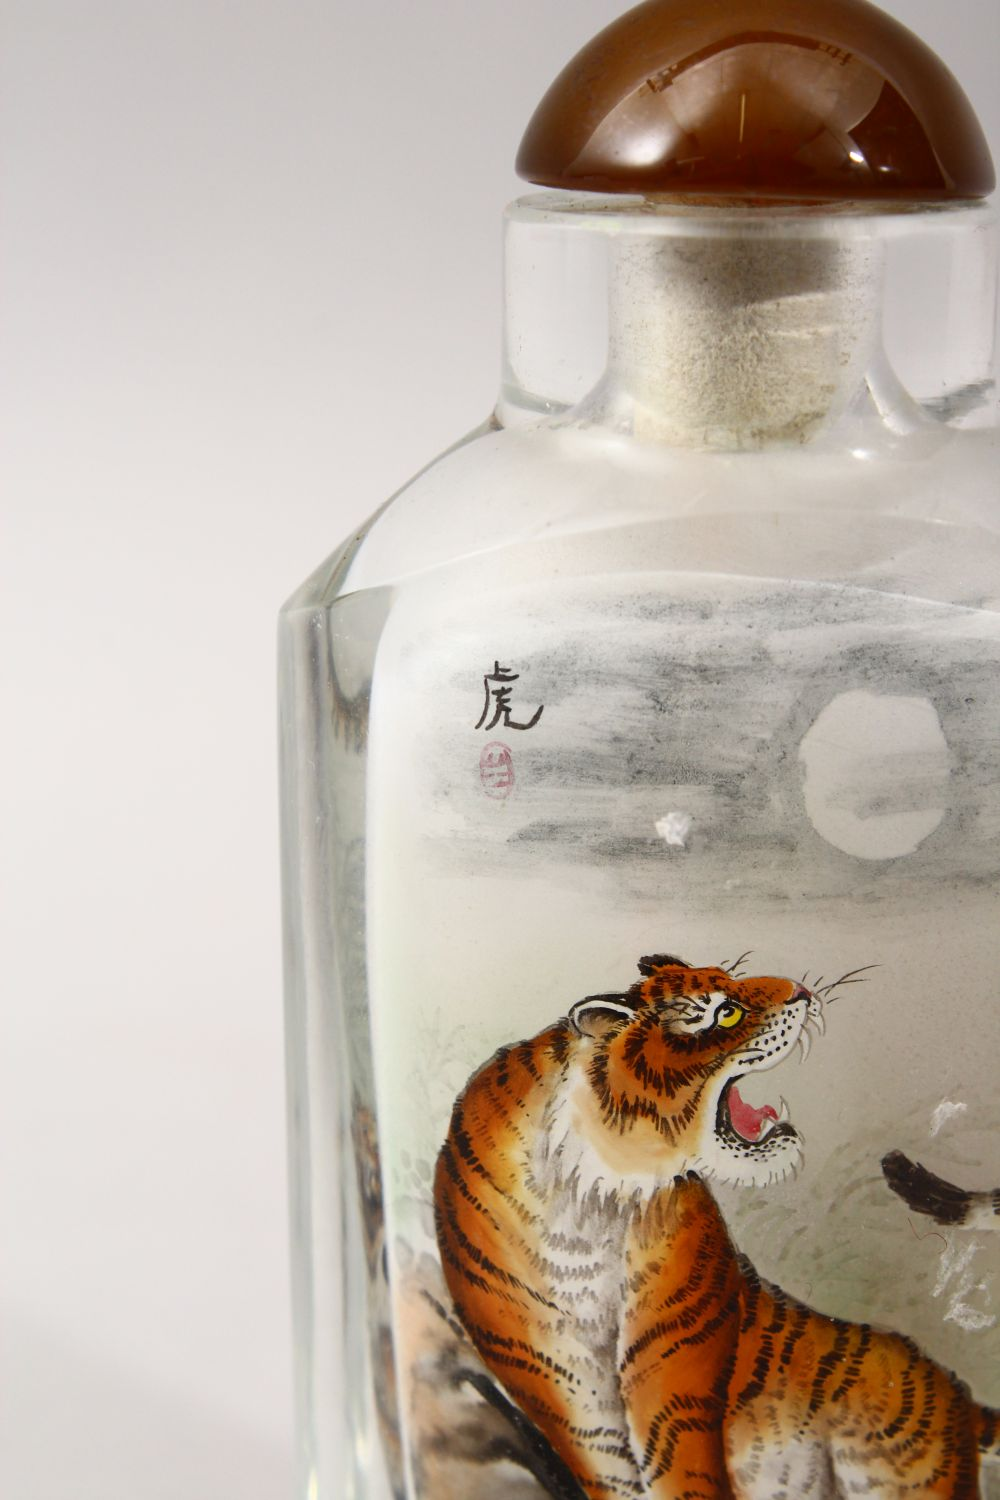 A GOOD 19TH / 20TH CENTURY CHINESE REVERSE PAINTED GLASS SNUFF BOTTLE, depicting scenes of a - Image 3 of 4